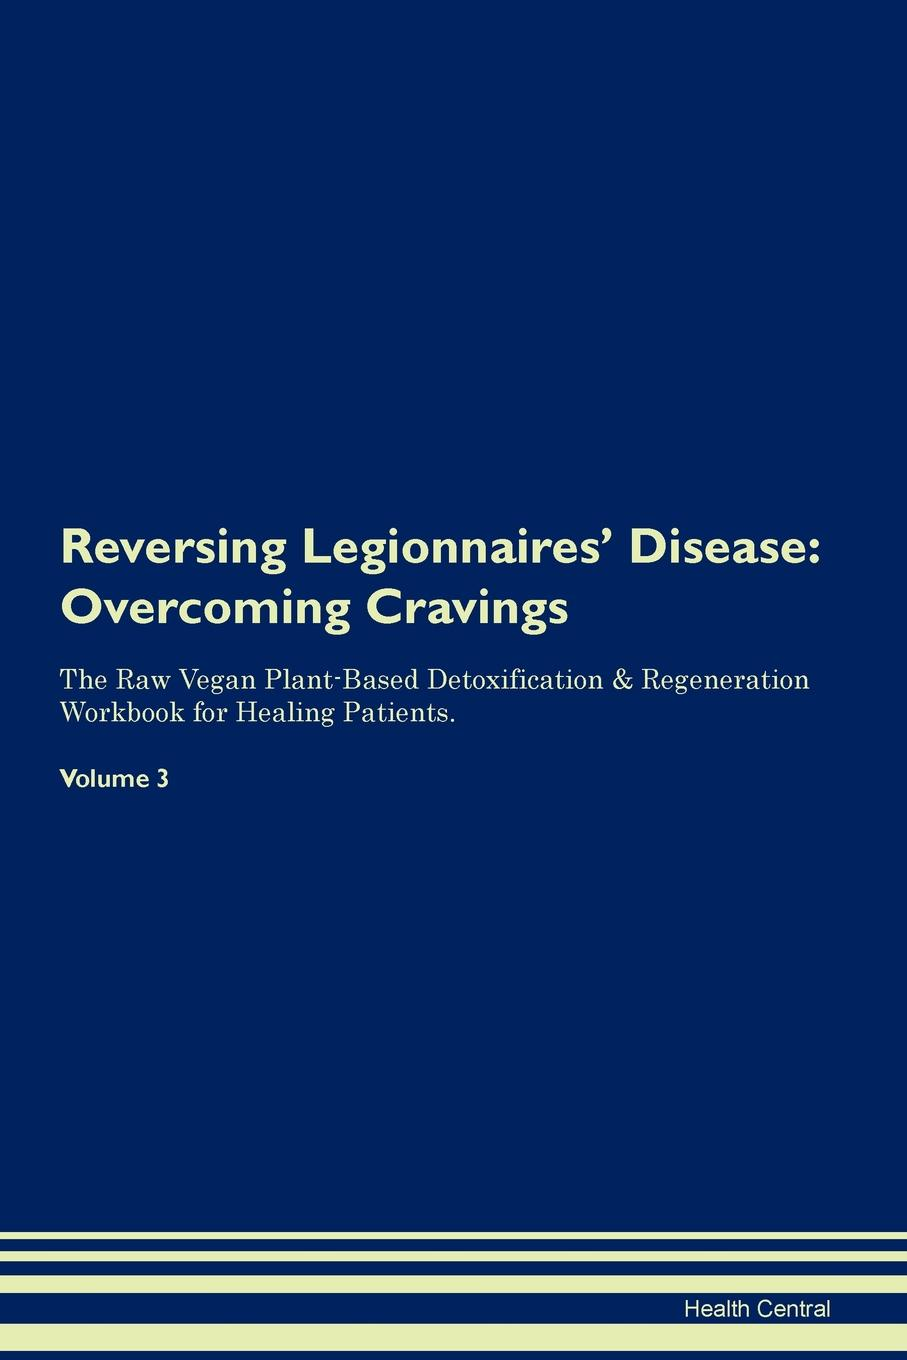 Фото - Health Central Reversing Legionnaires' Disease. Overcoming Cravings The Raw Vegan Plant-Based Detoxification & Regeneration Workbook for Healing Patients. Volume 3 health central reversing extramammary paget s disease overcoming cravings the raw vegan plant based detoxification regeneration workbook for healing patients volume 3